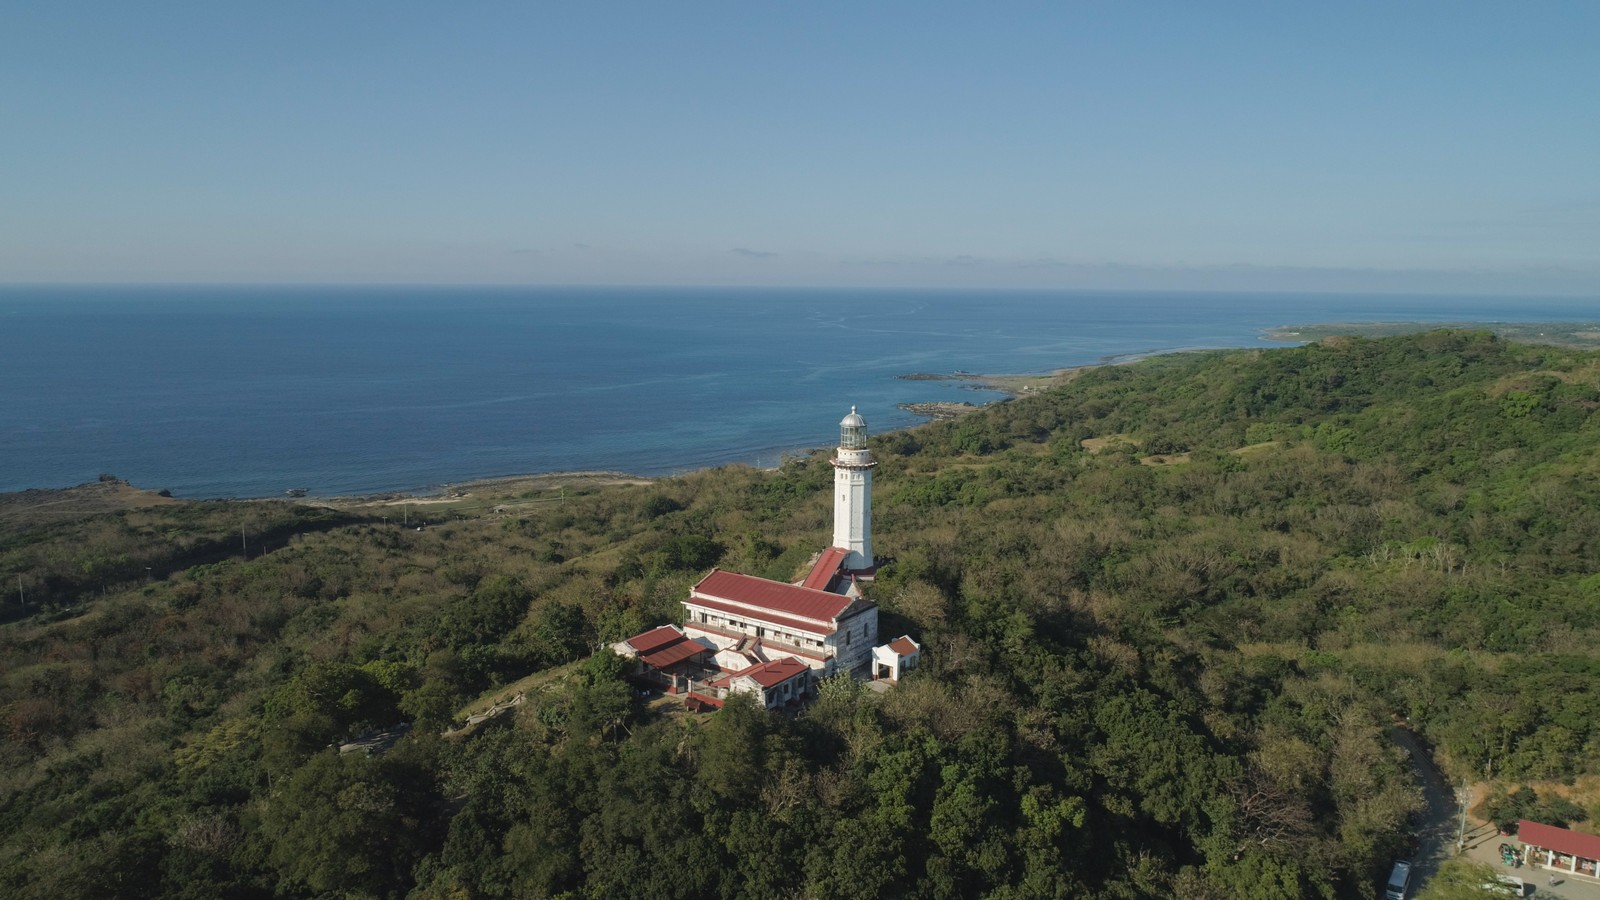 Cape Bojeador Lighthouse aerial view in Laoag